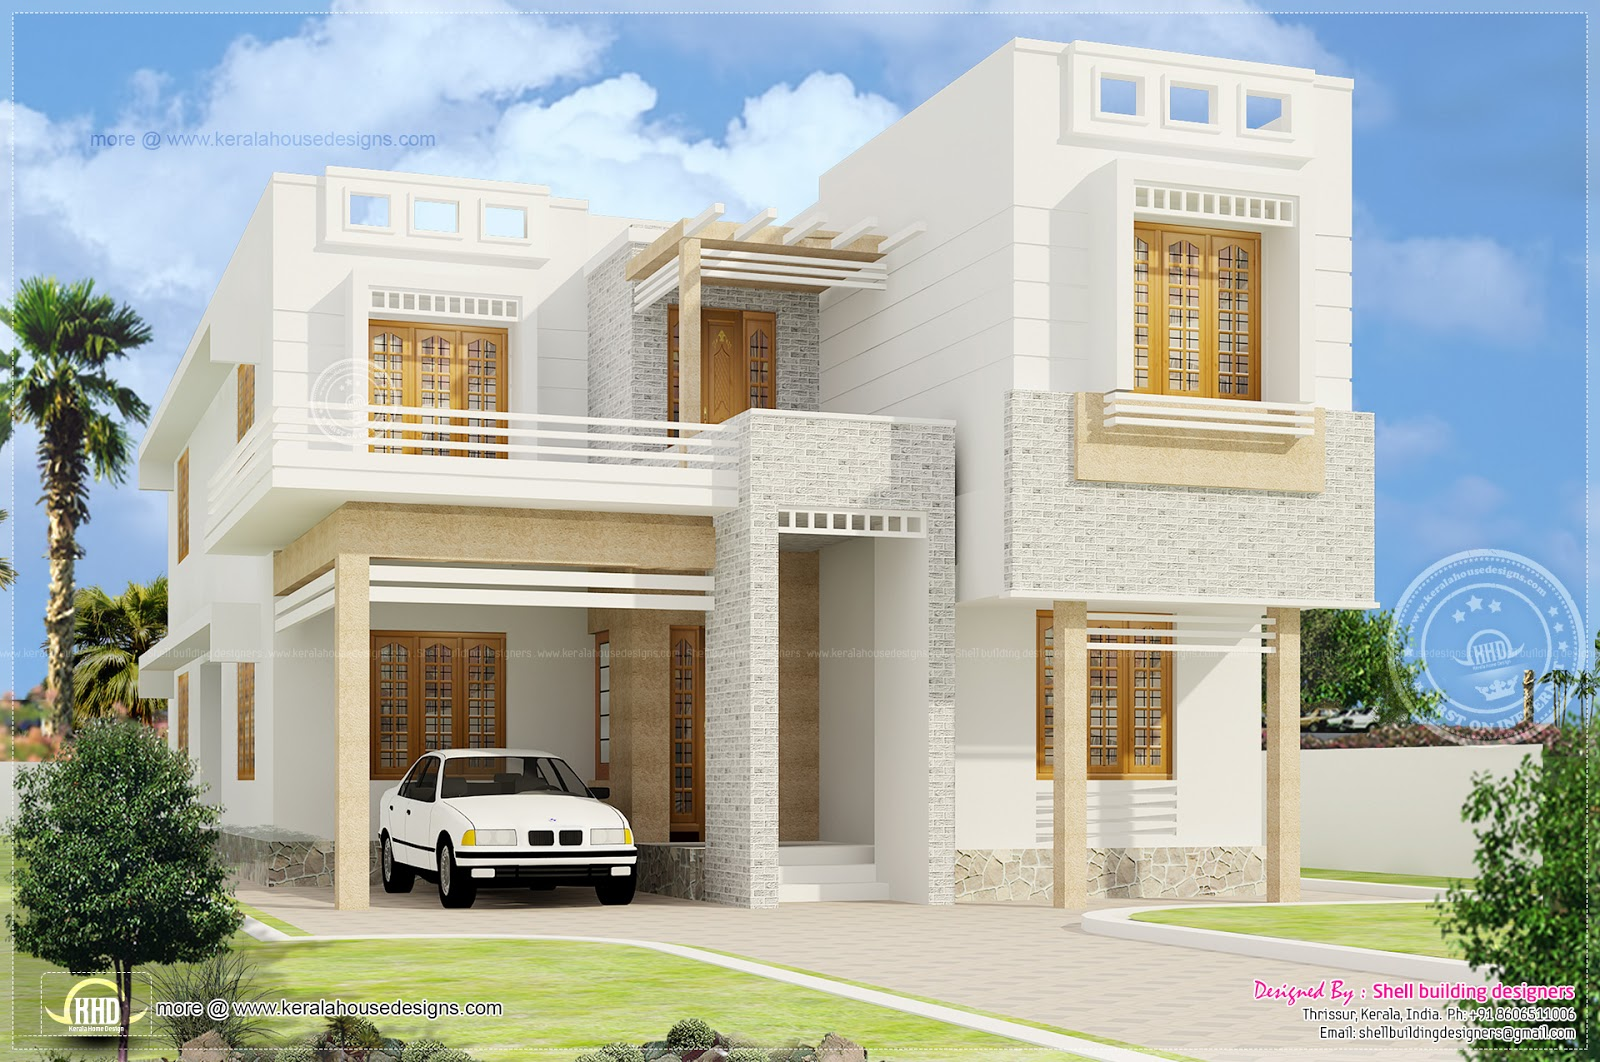 Beautiful 4 bedroom house exterior elevation kerala home design and floor plans - Home construction designs ...